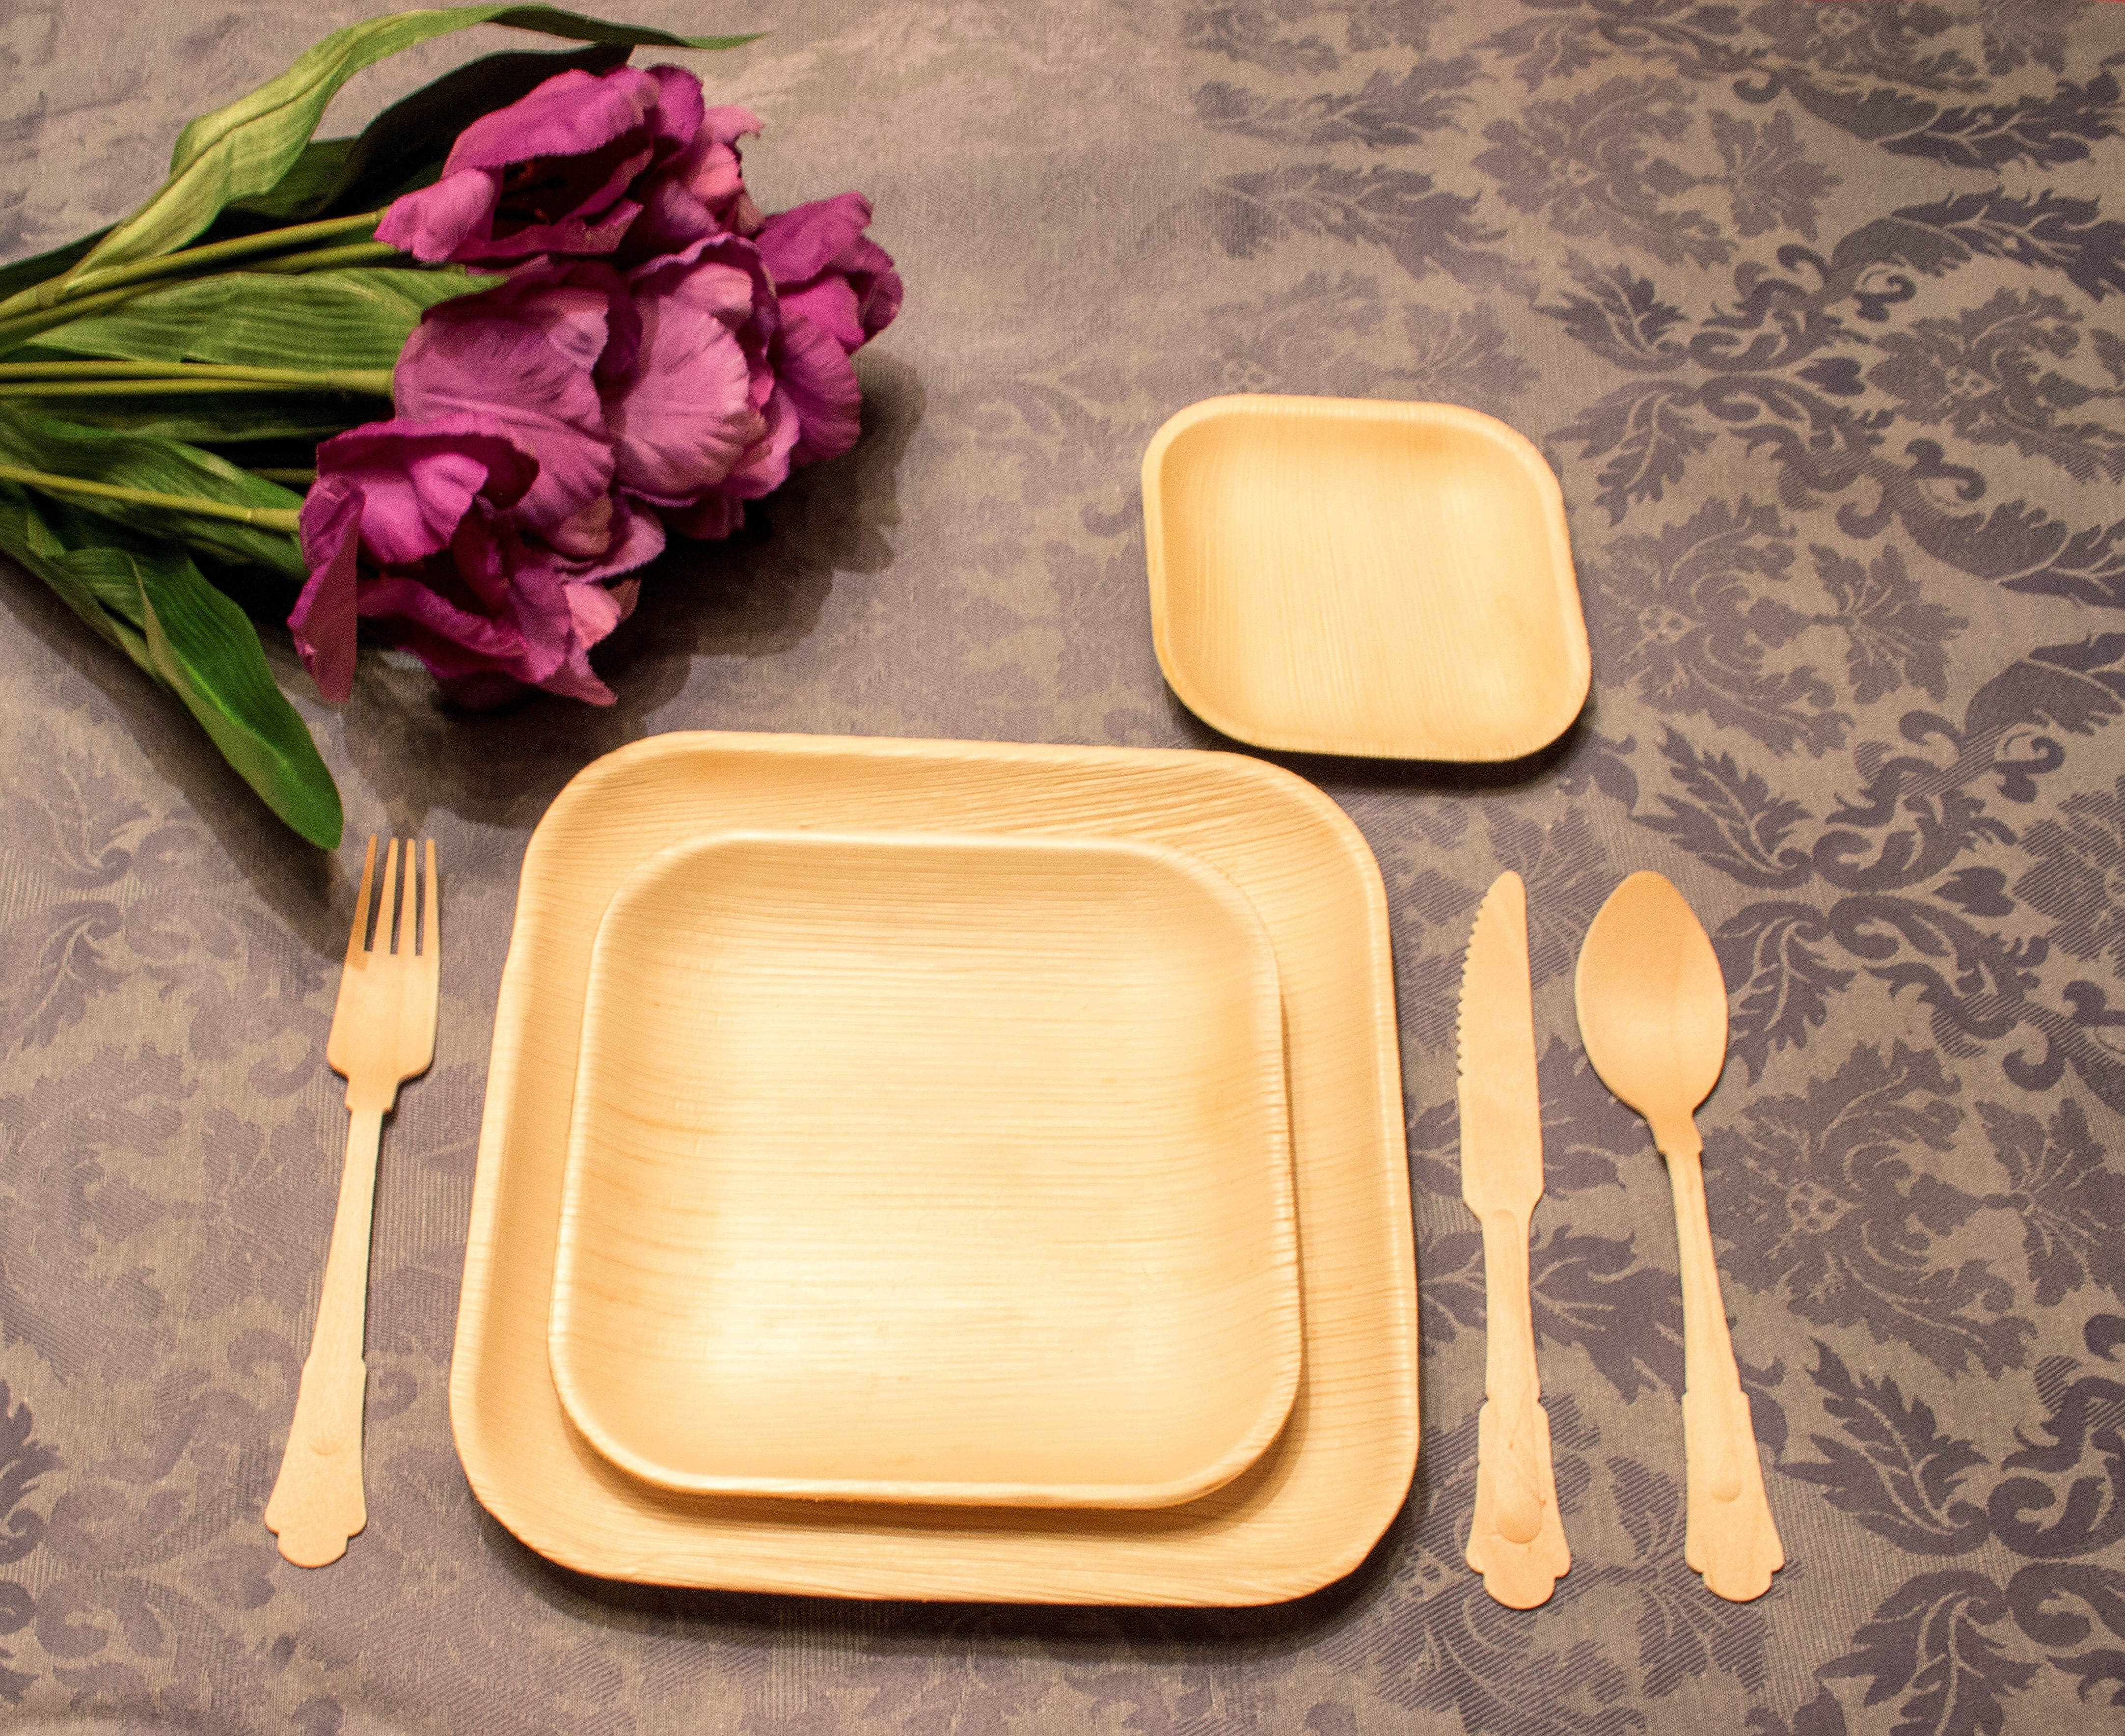 ... Frondware 10\  Palm Leaf Square Disposable Party Dinner Plates Large Size Chemical Free ... & Paper Plate Alternatives - Large Palm Tree Plates - Paperless ...